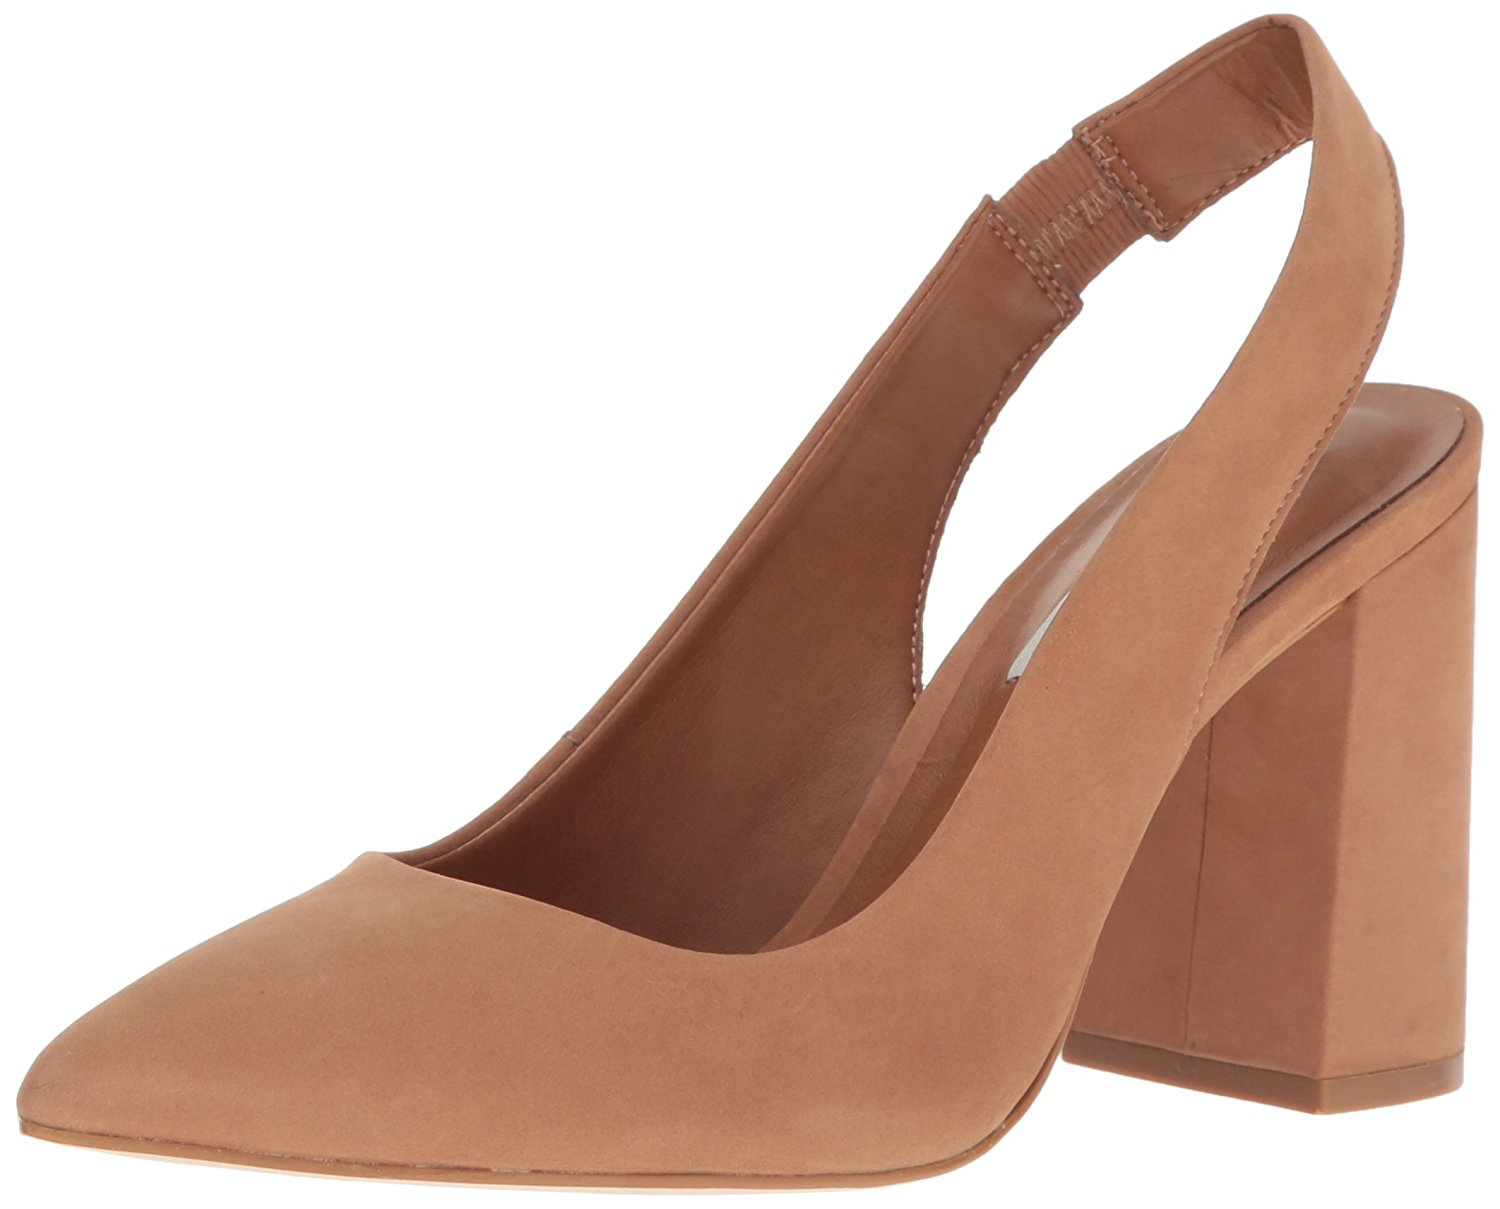 Image is loading Steve-Madden-Womens-Dove-Leather-Pointed-Toe-SlingBack-